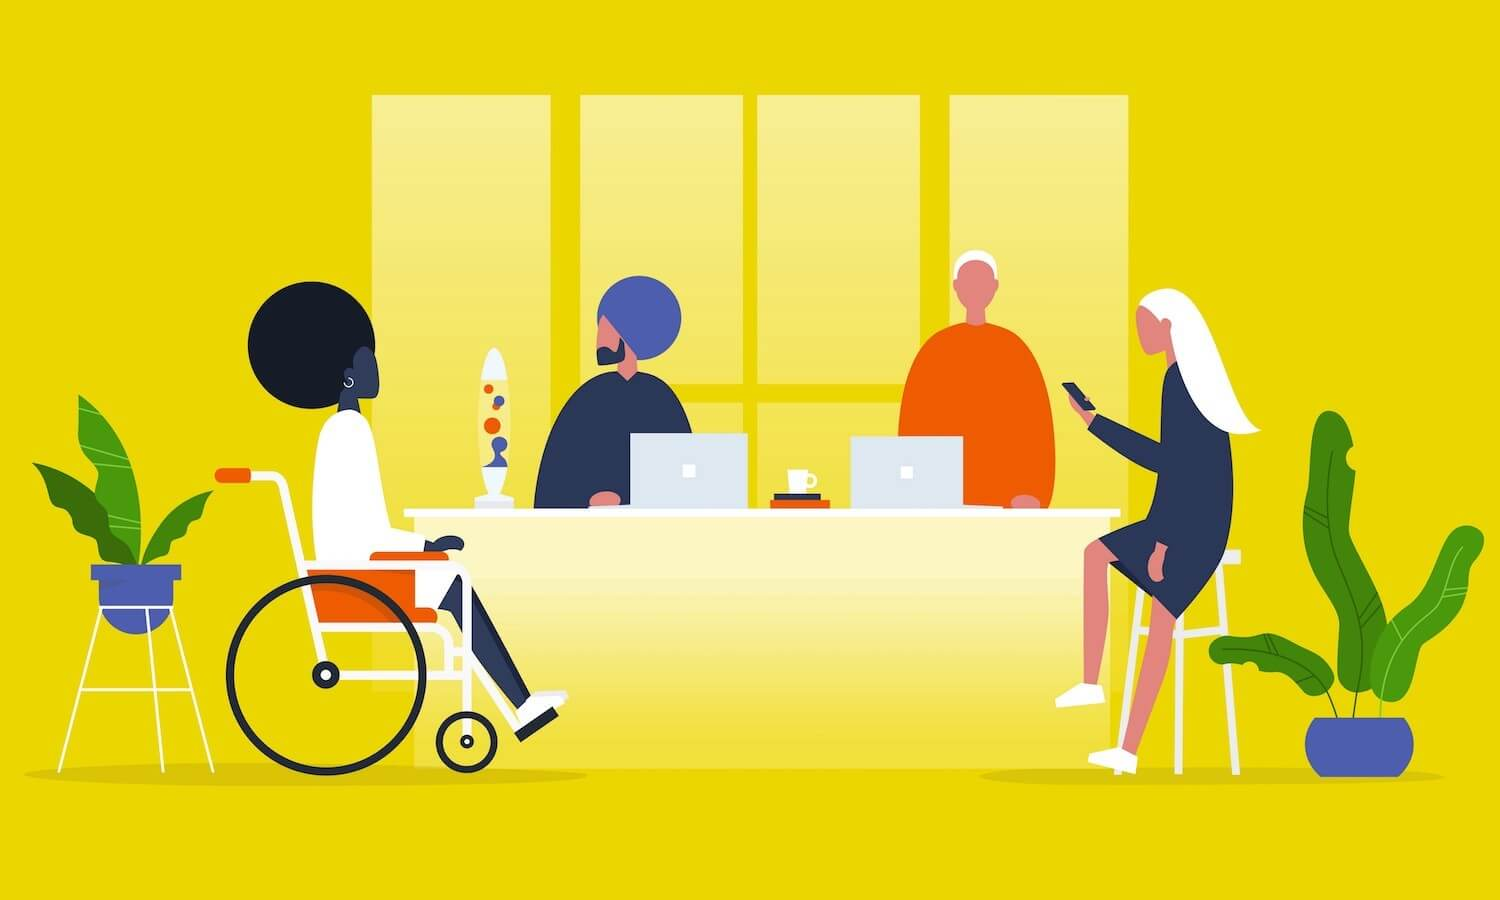 Four gender, ethnicity and ability cartoon people sitting at a table with plants on a yellow background